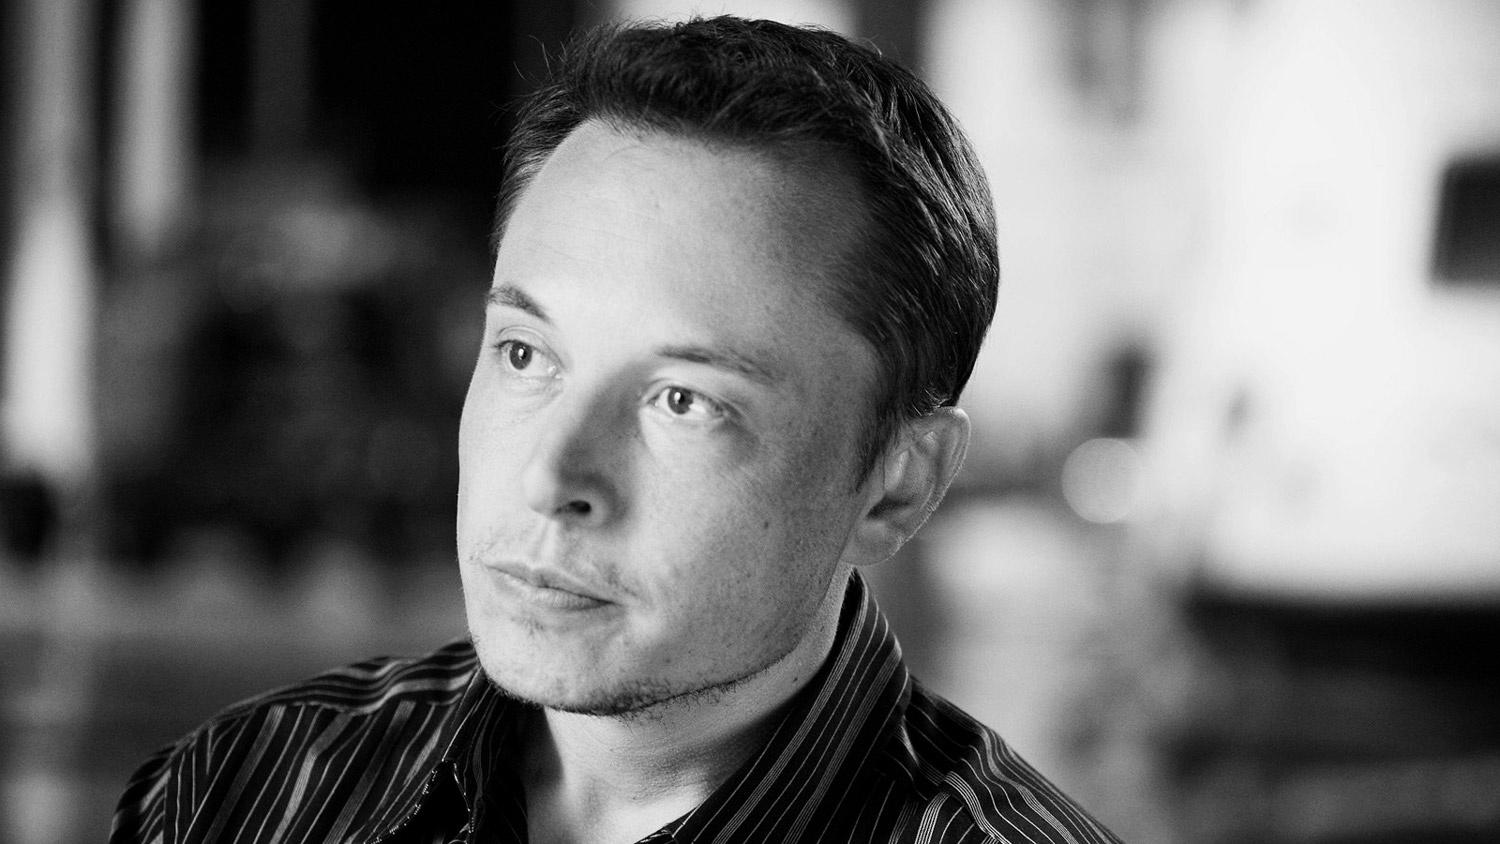 Elon Musk cancels customer's Tesla order because he was 'super rude'